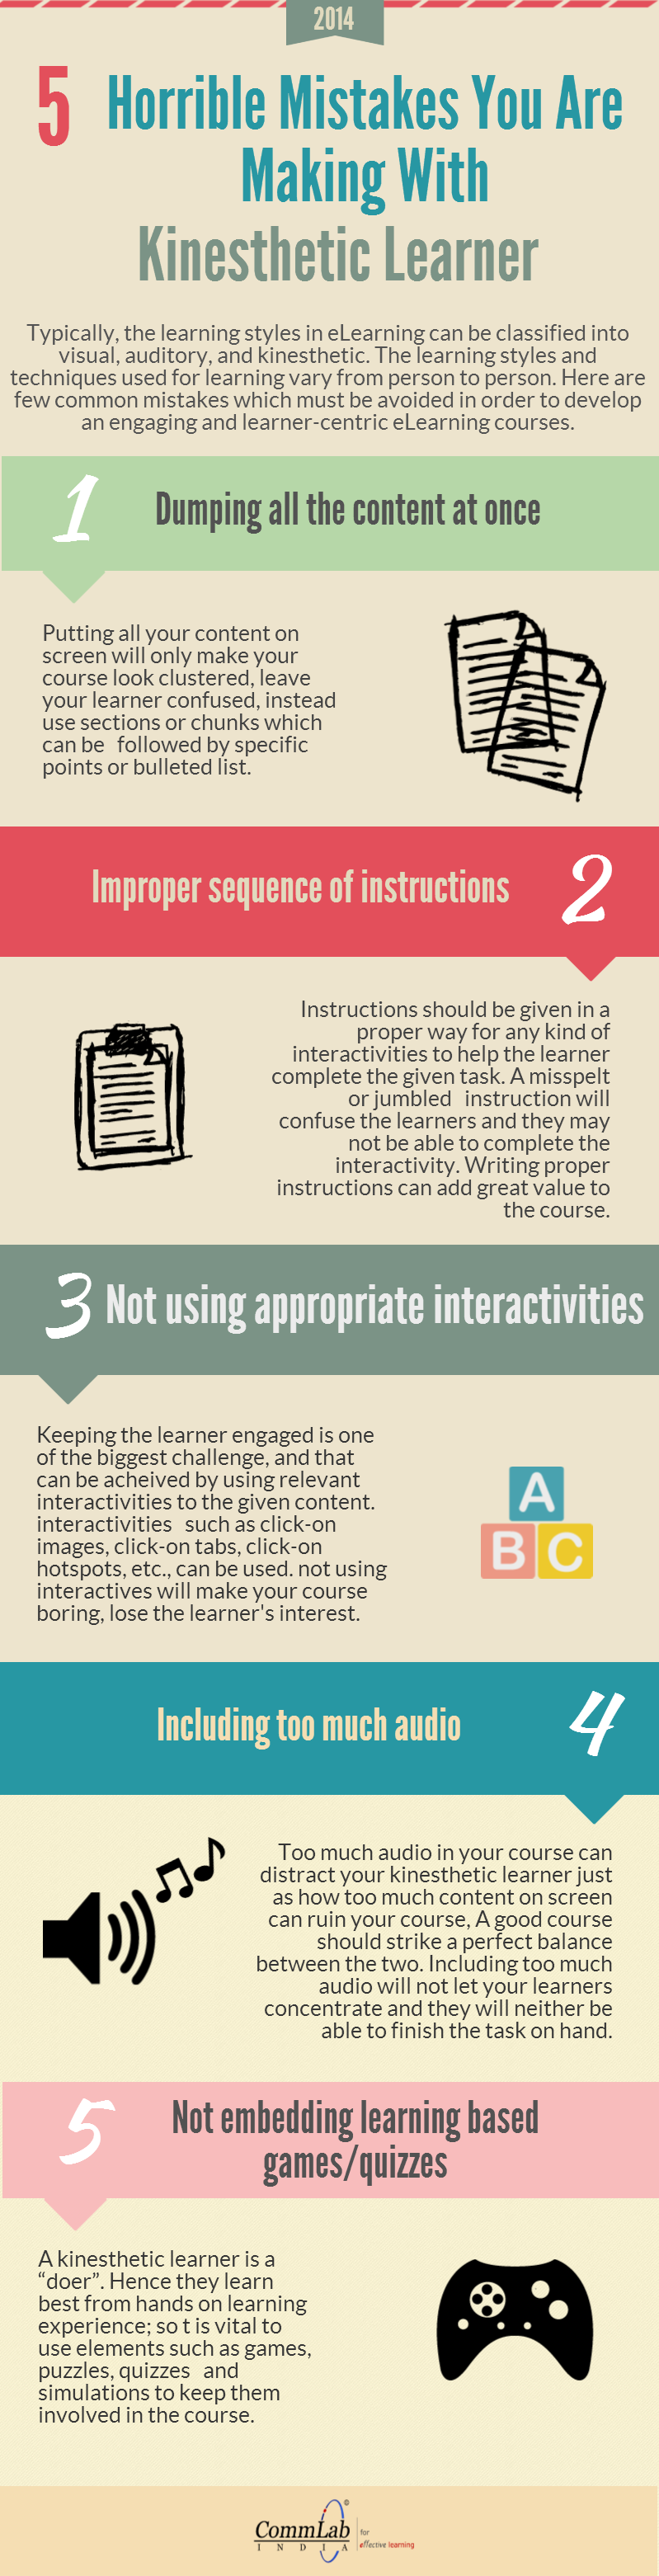 E-learning  Mistakes You Are Making With Kinesthetic Learner – An Infographic